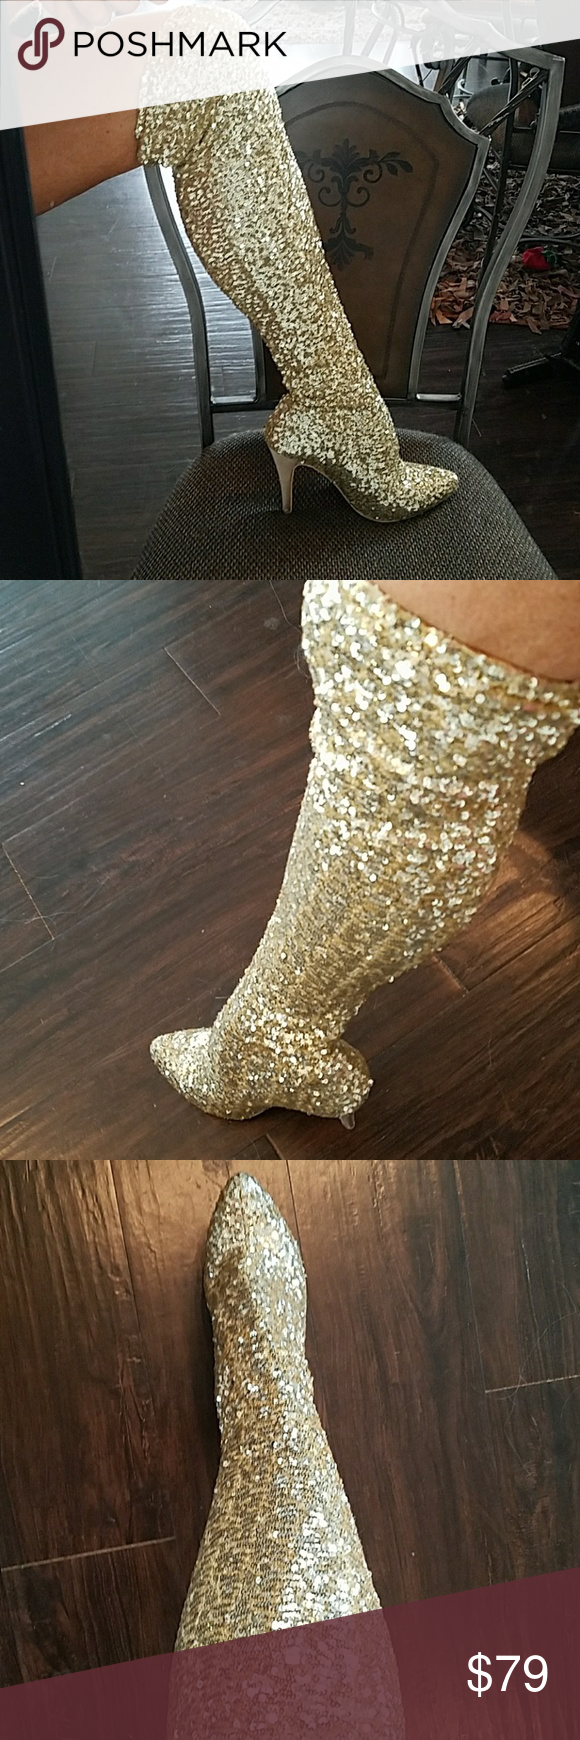 292018120bc 💛LIMITED EDITION STEVE MADDEN SEQUIN BOOTS!! 💛BRAND NEW!!!! TINY ...